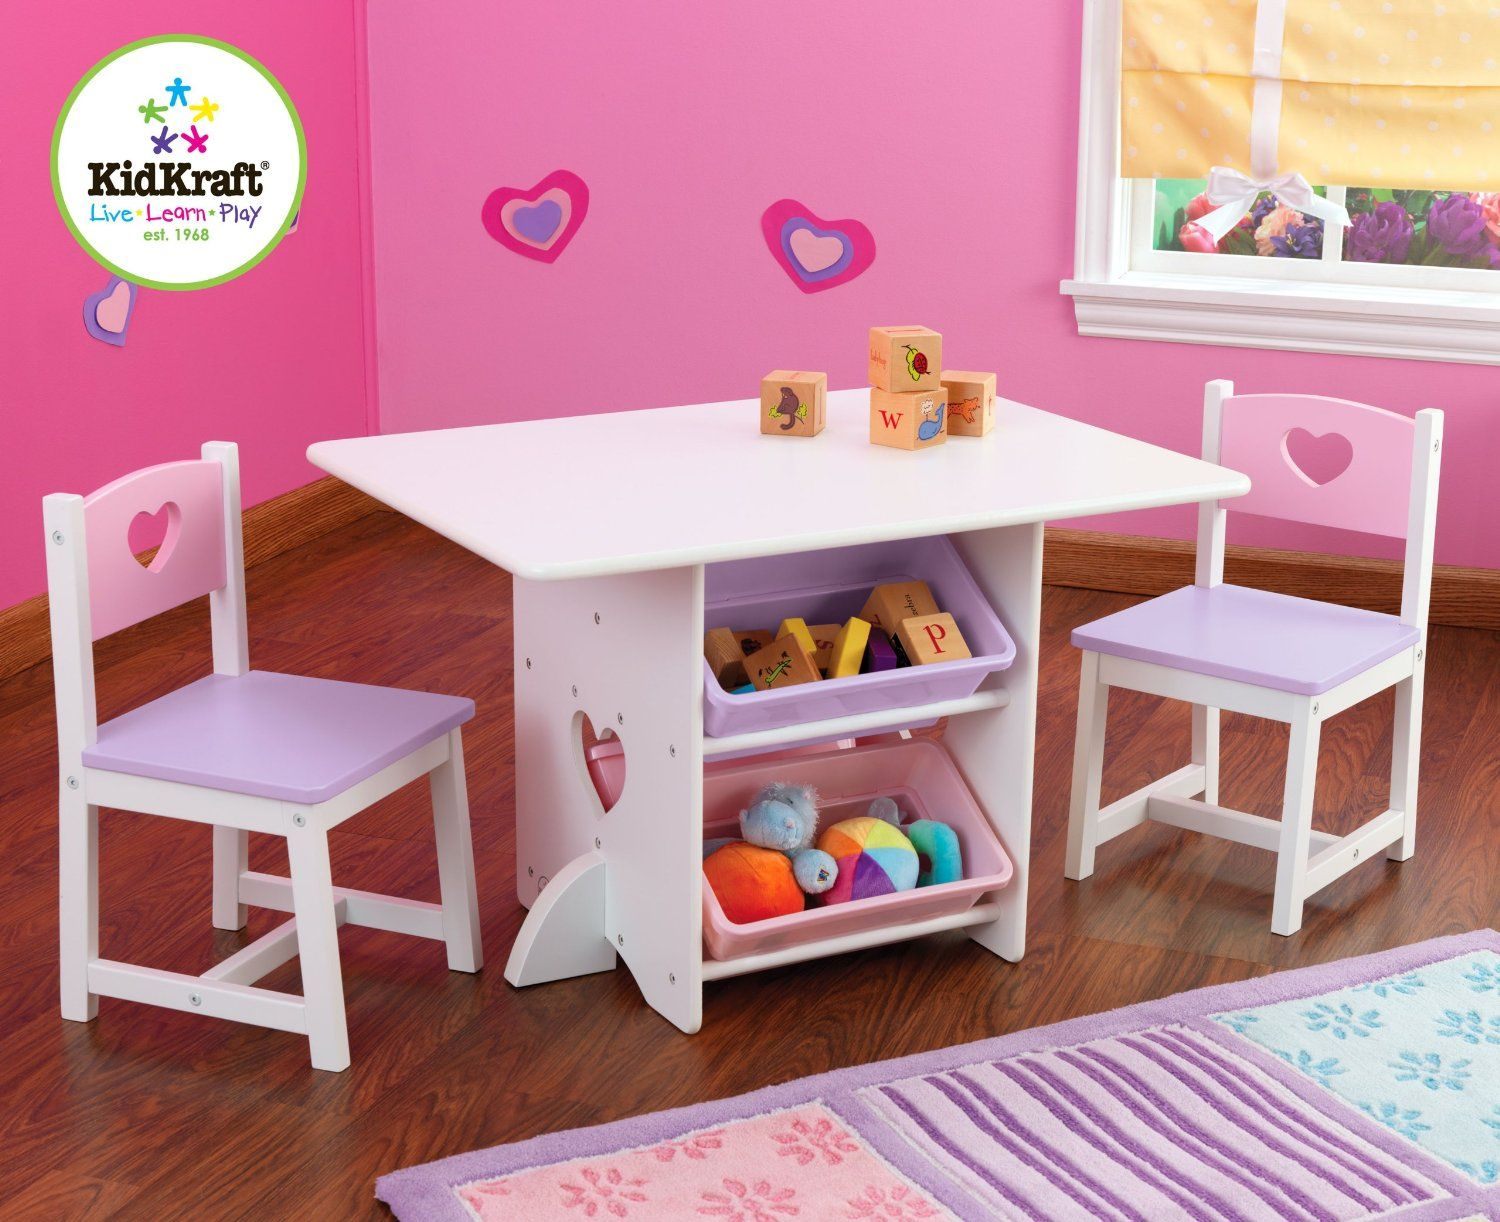 Kidkraft Heart Table and Chair Set Toys